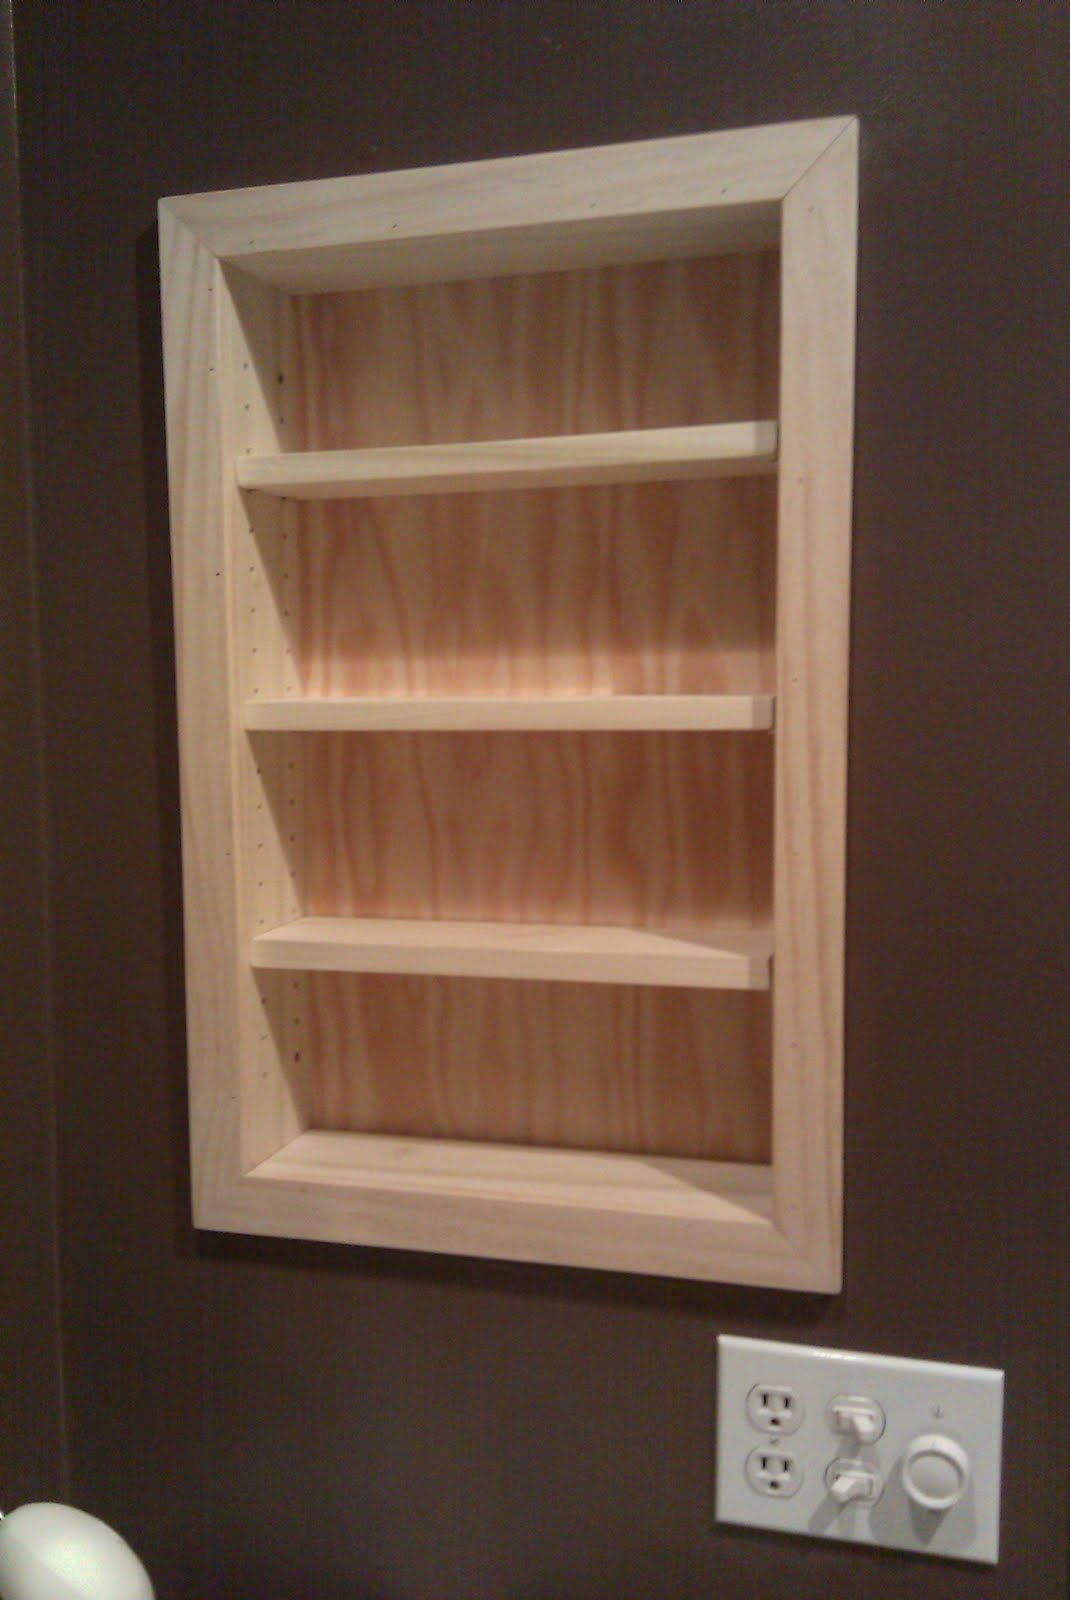 Superior This Client Removed Their Old Medicine Cabinet And Asked Me To Replace It  With Recessed Shelves